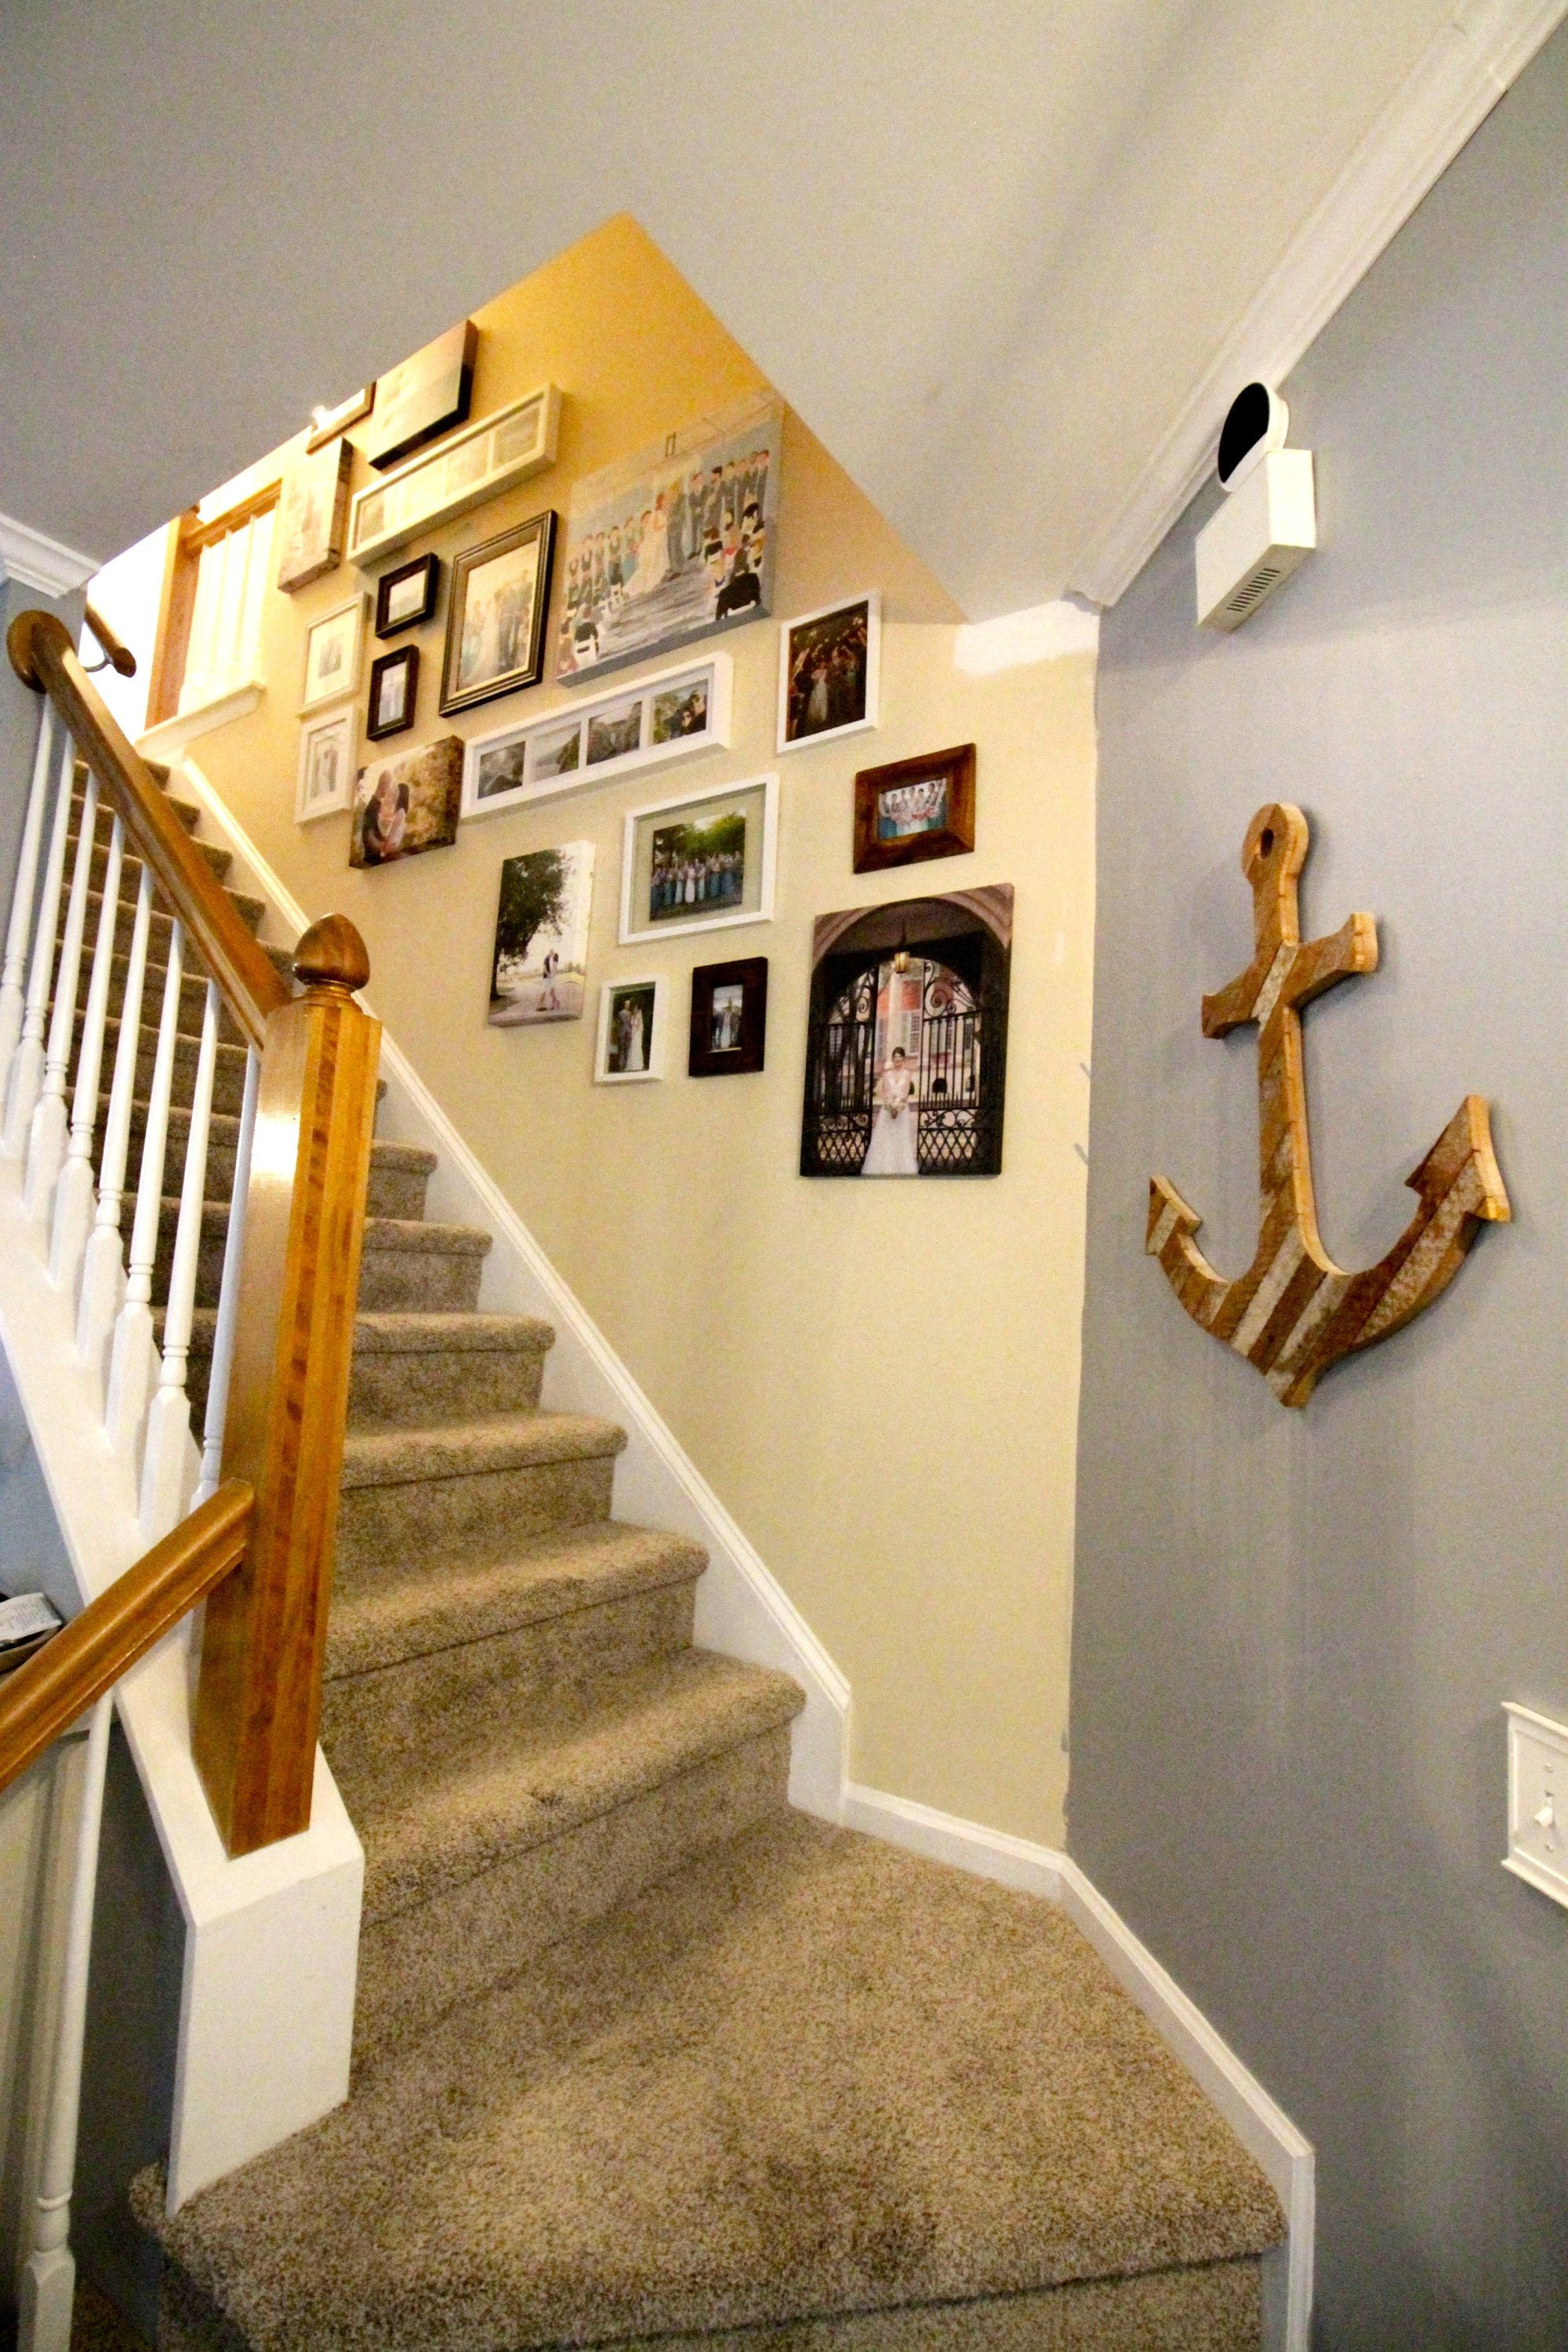 Unique Gallery Wall Layout Ideas | Gallery walls | Pinterest ...